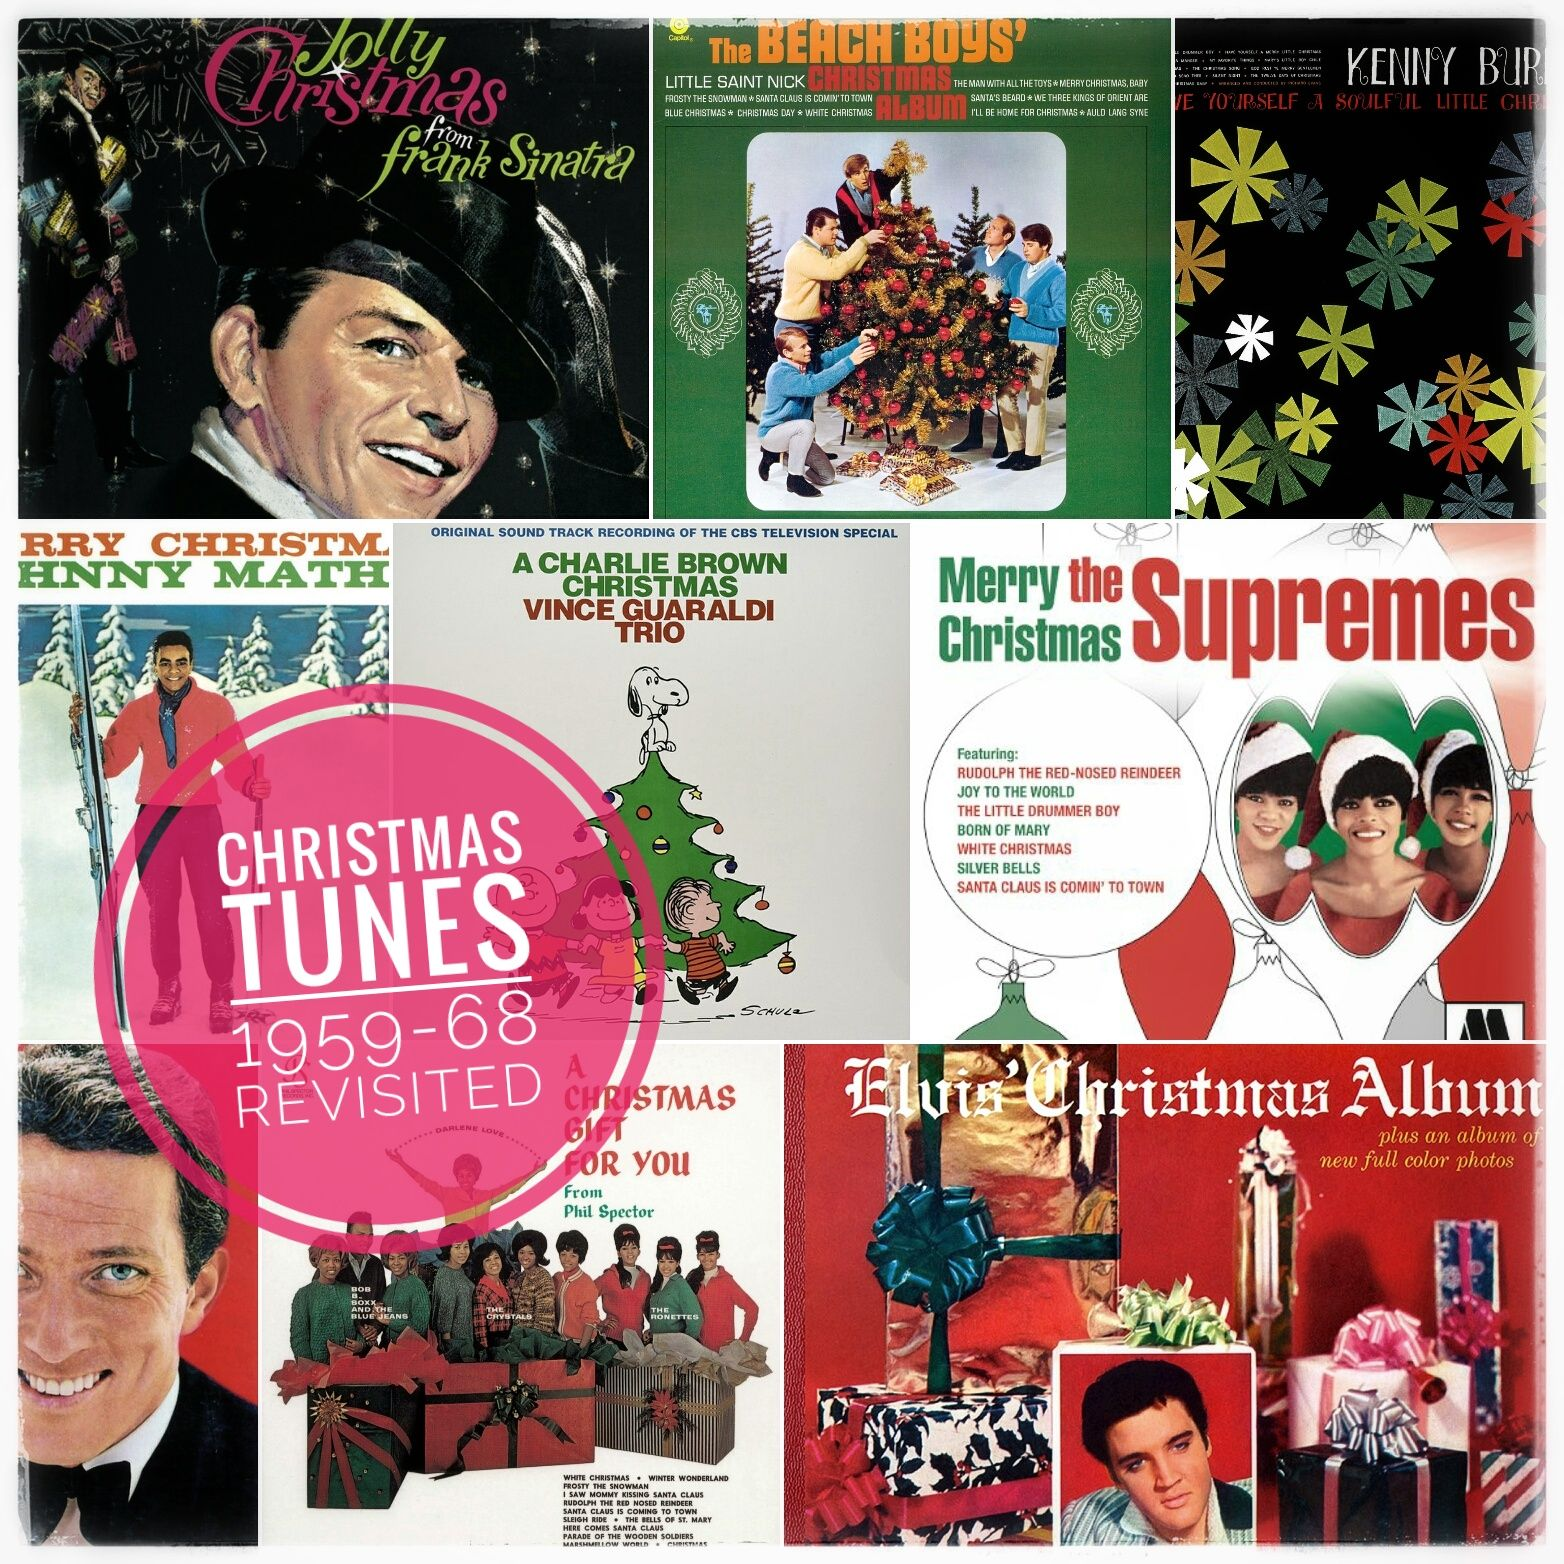 1959-68 Revisited: Christmas Tunes